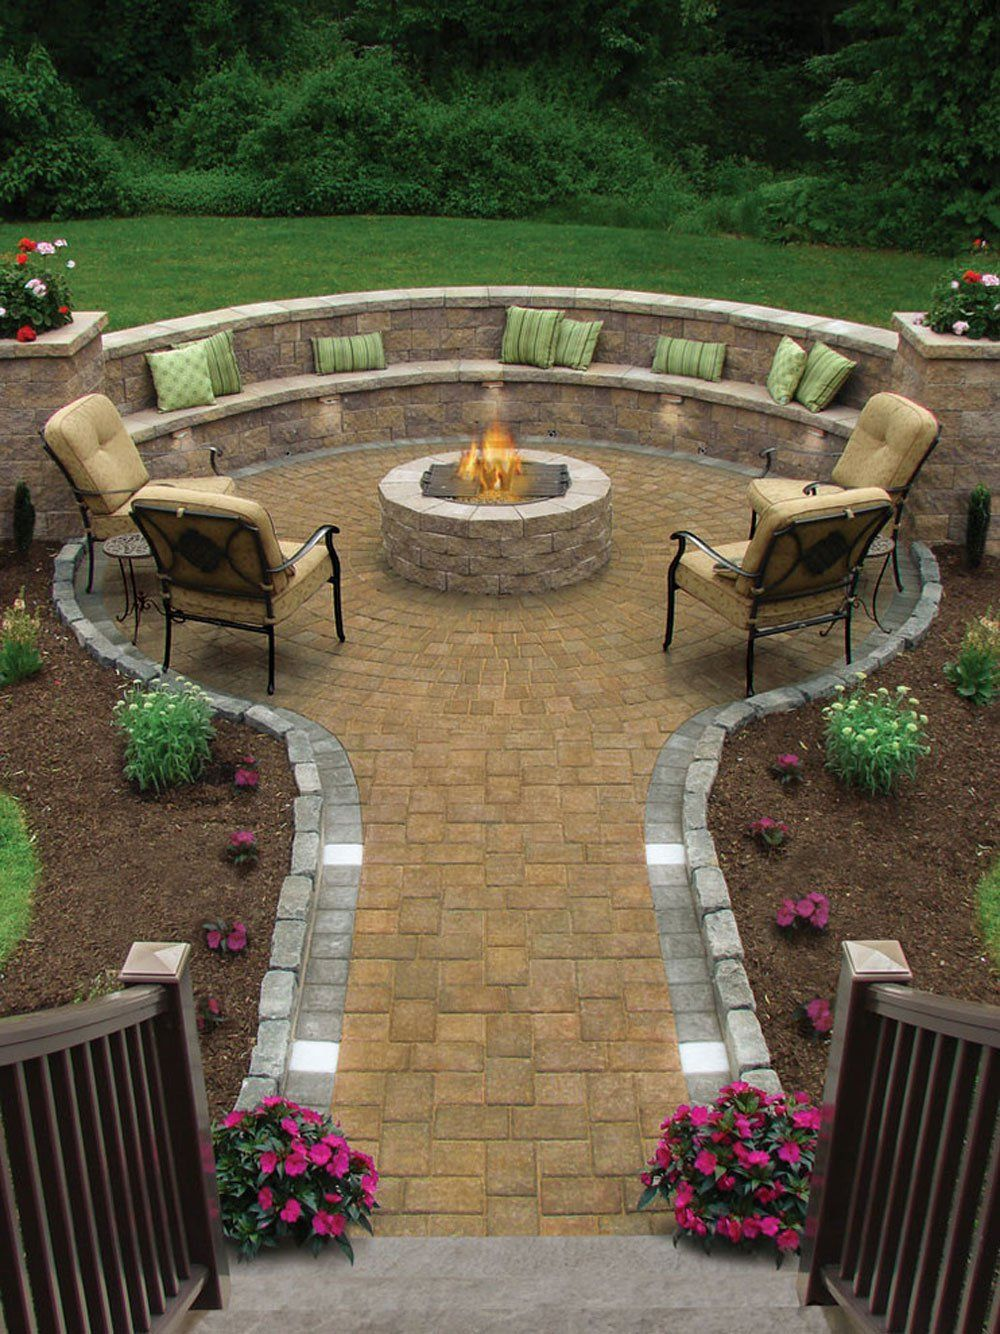 Backyard Landscaping With Fire Pit 17 of the most amazing seating area around the fire pit ever